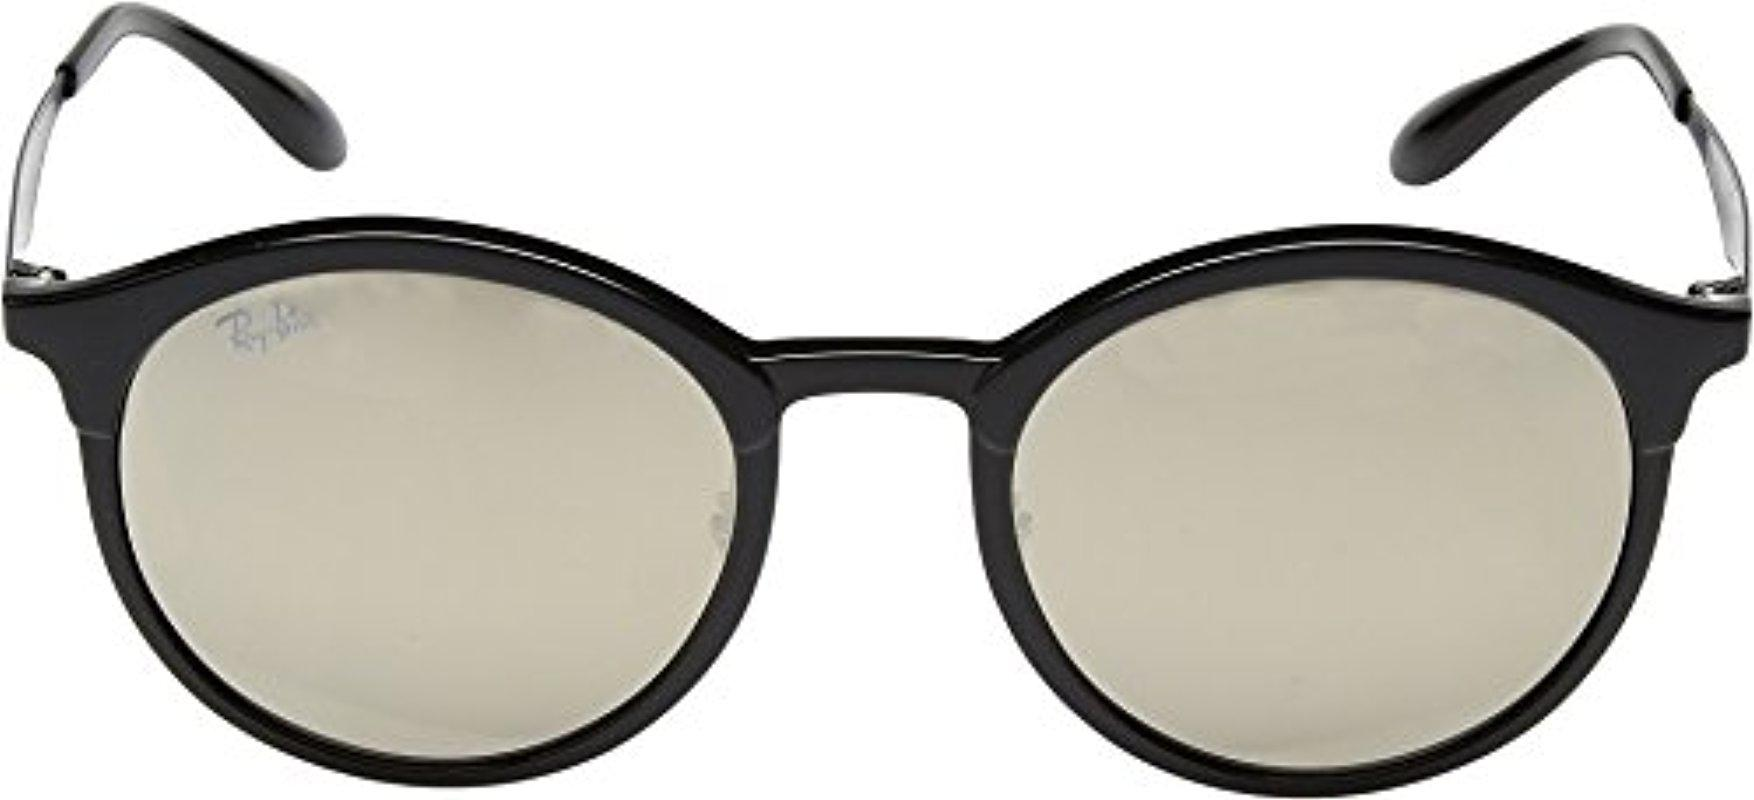 0837080315 Ray-Ban Emma Non-polarized Iridium Round Sunglasses